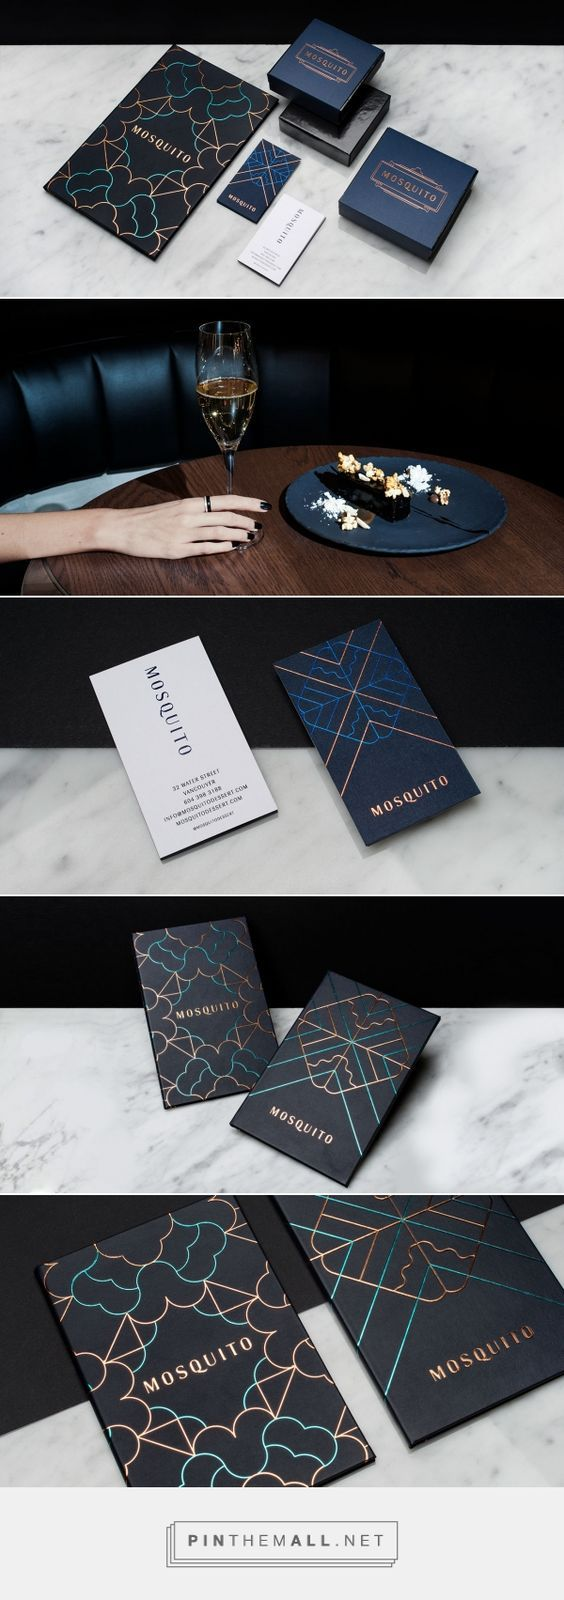 (38) Mosquito by Glasfurd & Walker Design... - a grouped images picture - Pin Them All   • IDENTITY •   Pinterest